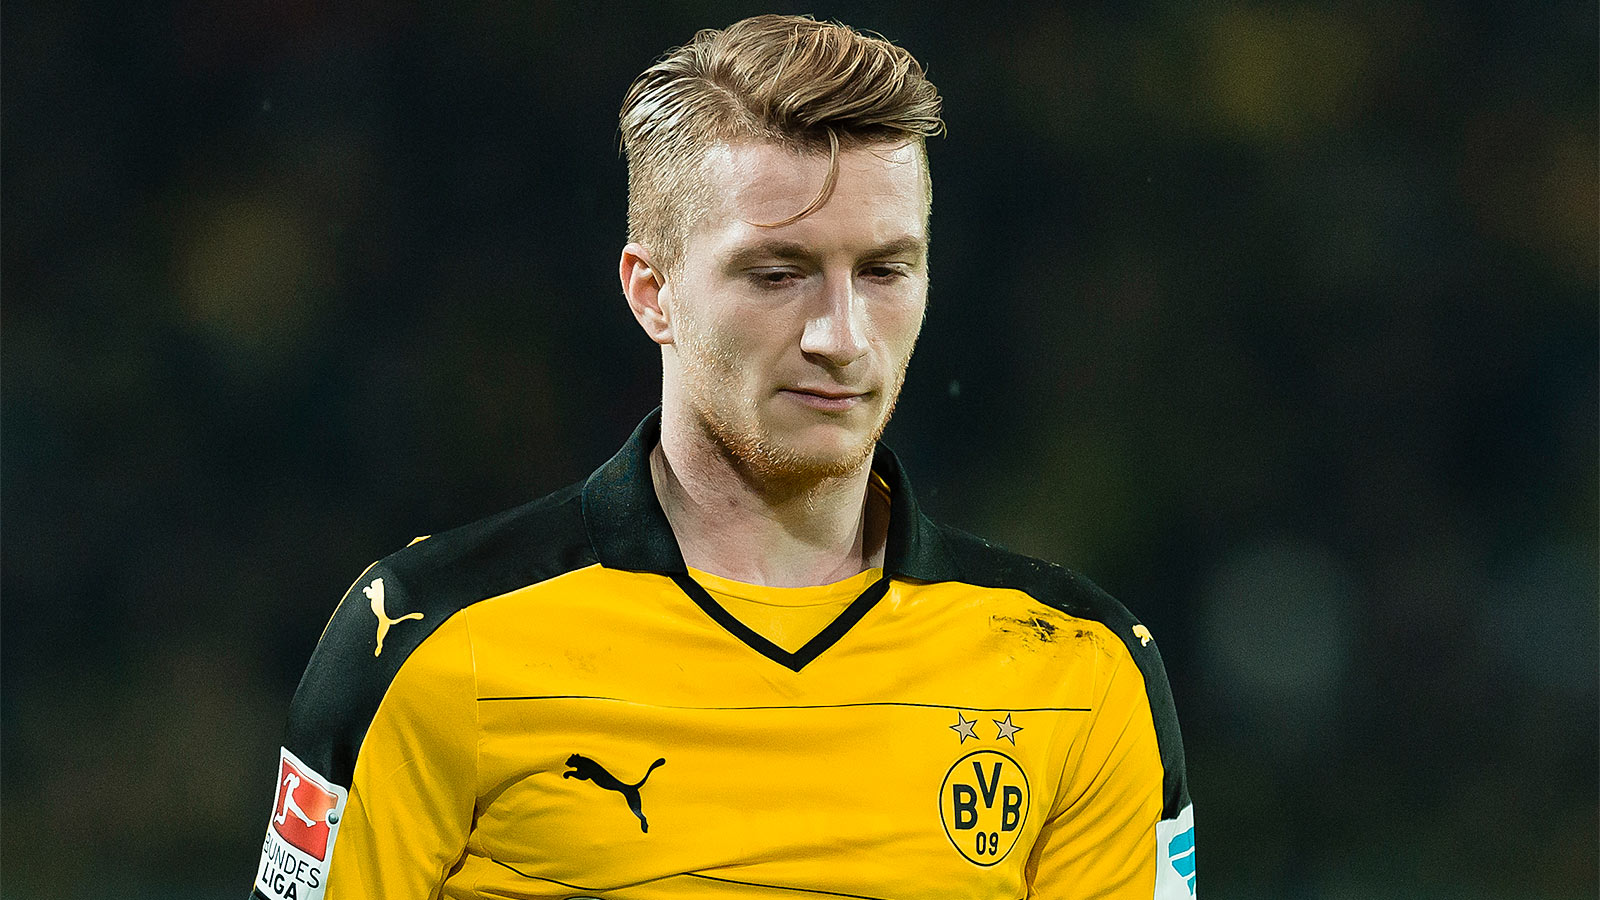 Marco Reus left off Germany's Euro team on his birthday, and Twitter keeps rubbing it in